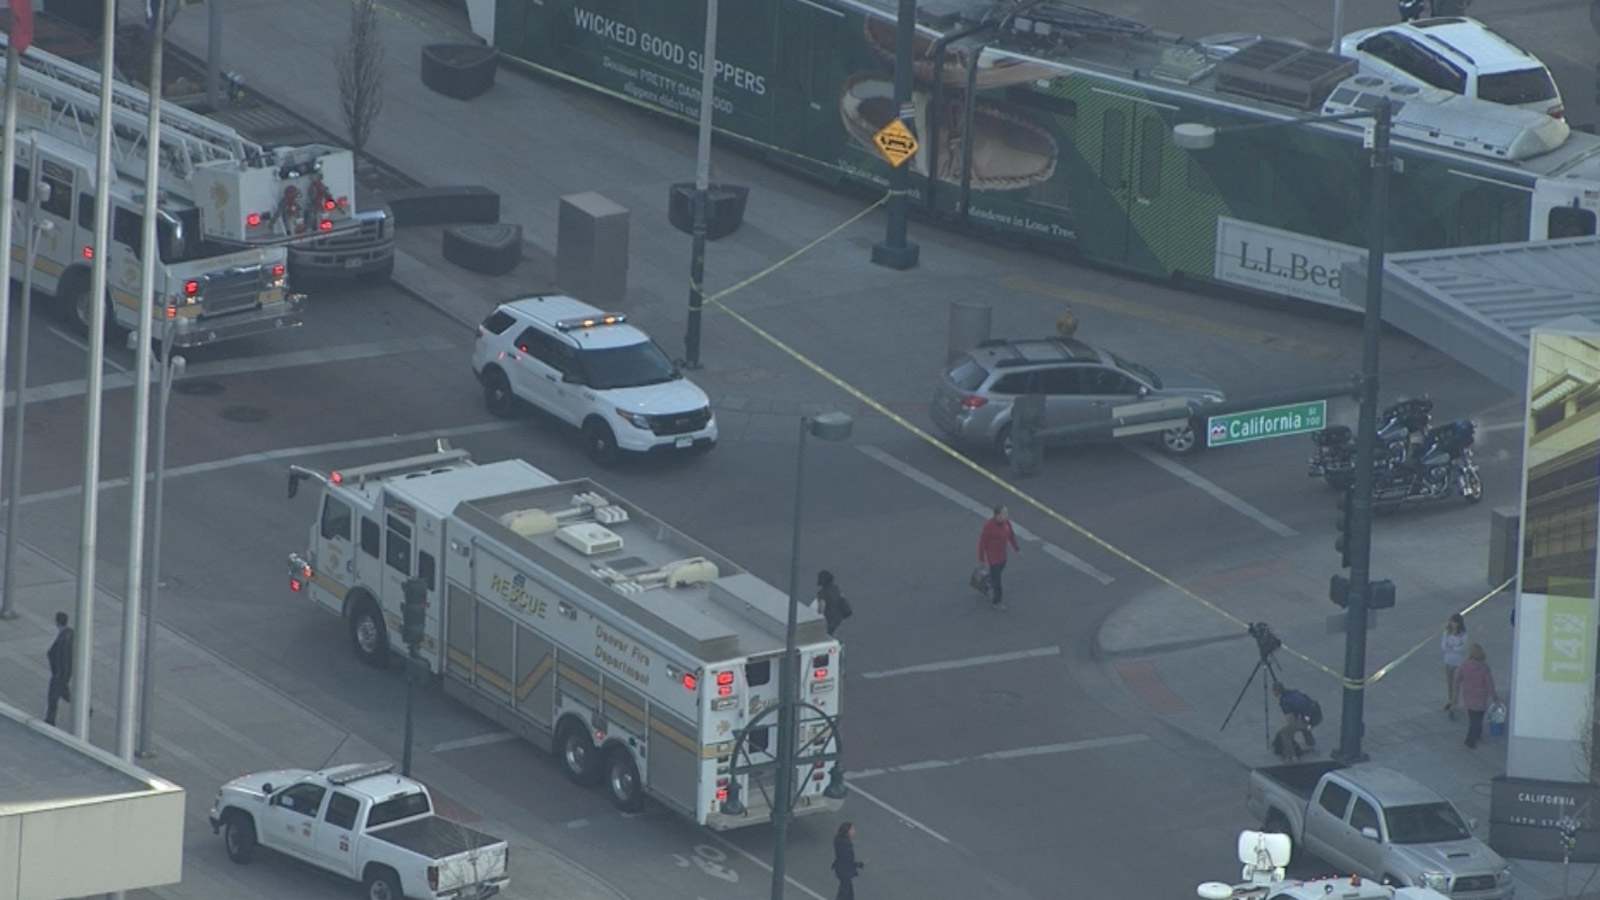 Copter4 flew over as police in Denver investigated a deadly accident between a pedestrian and light rail on Thursday (credit: CBS)